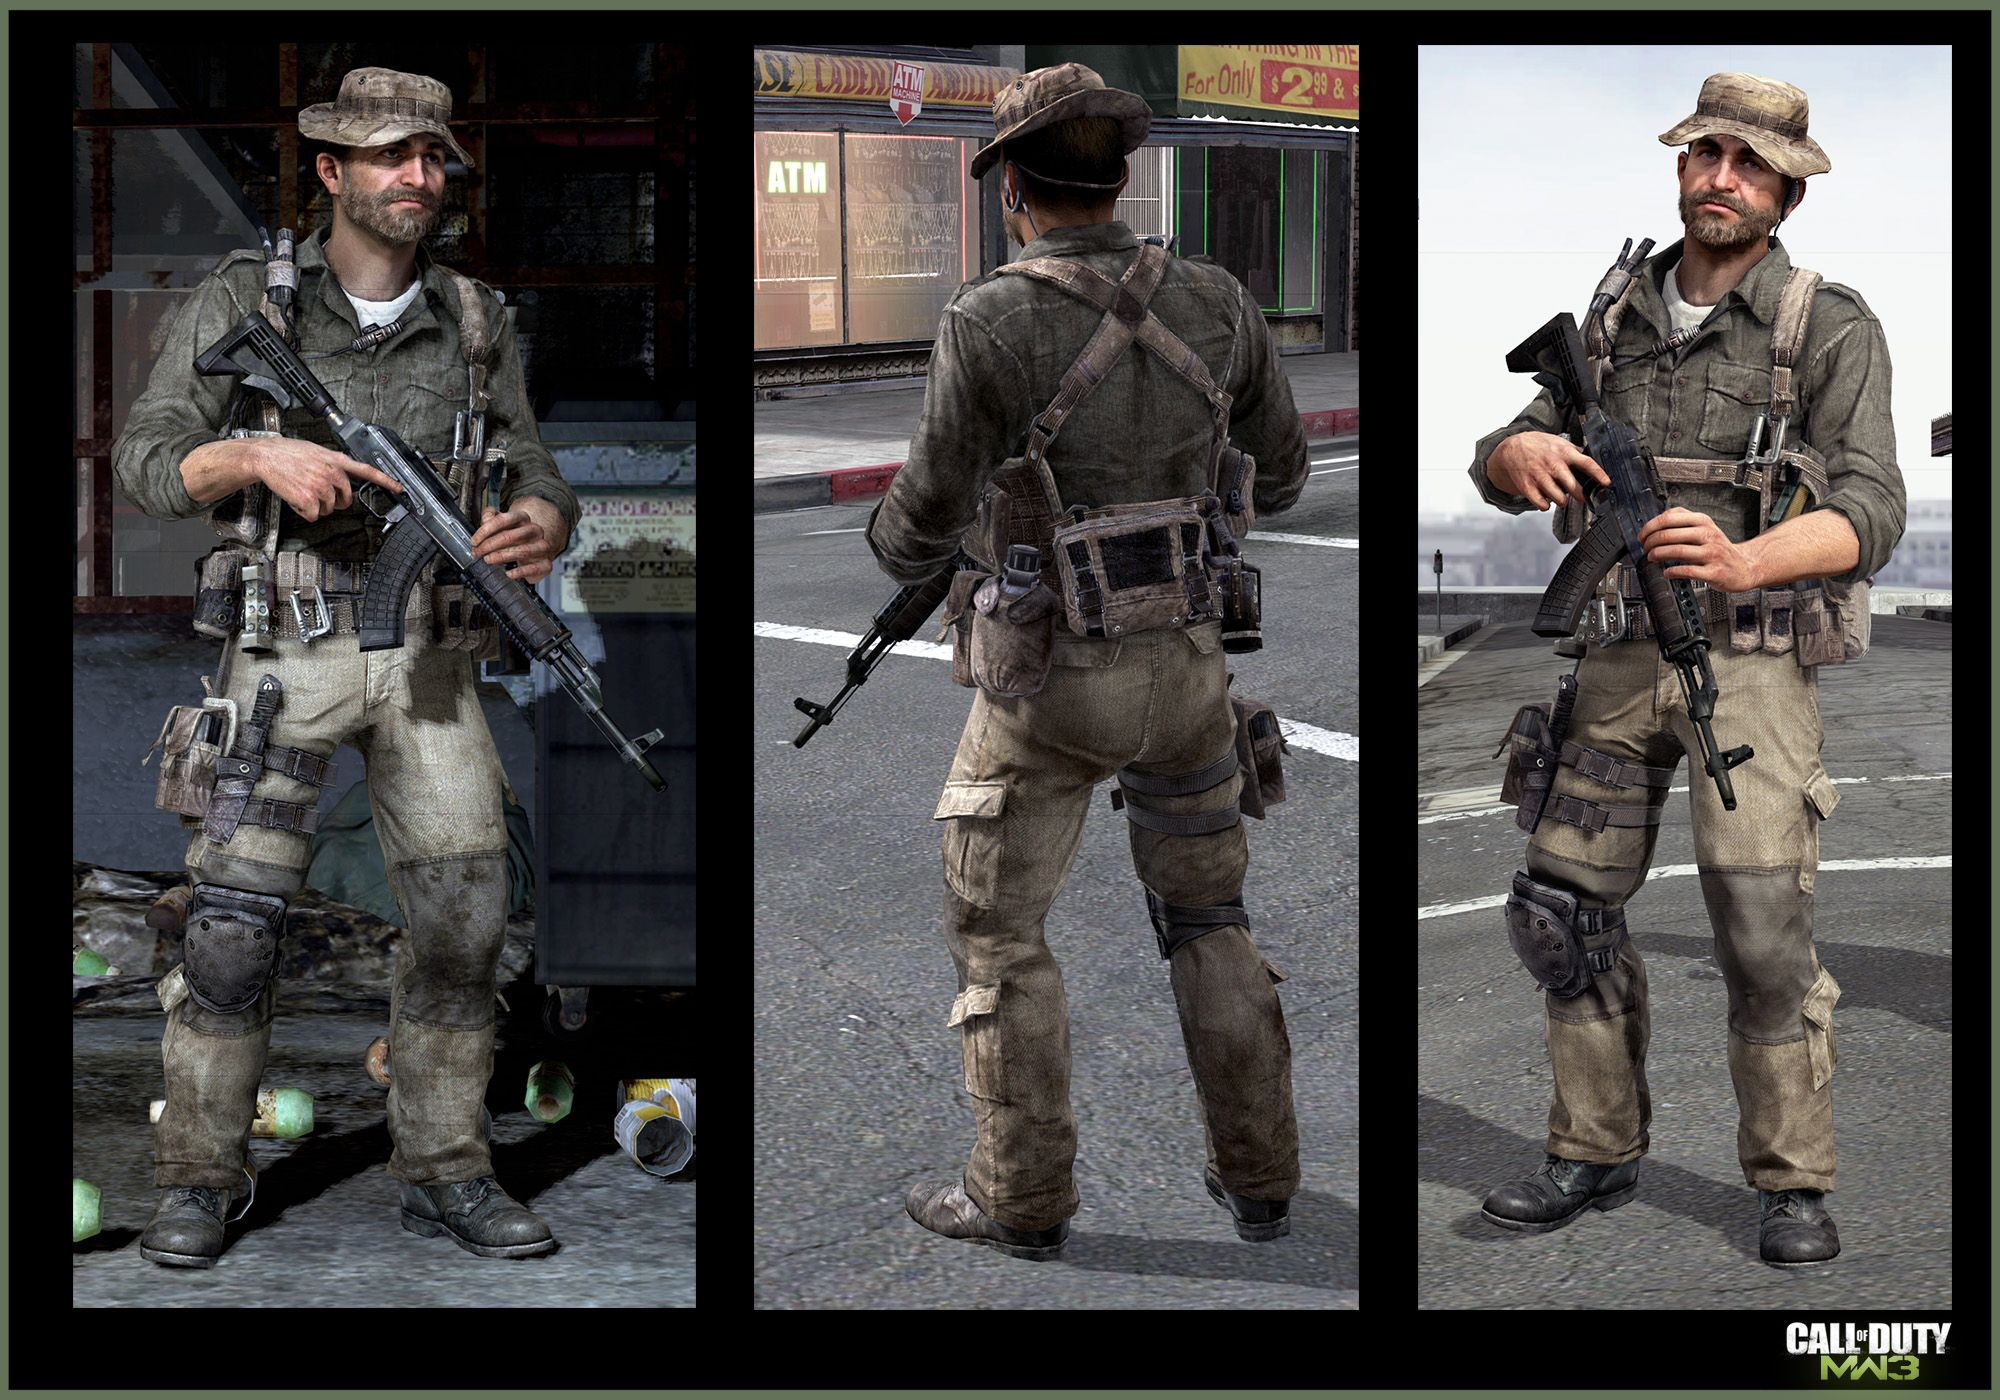 Call Of Duty Mw3 Activision Infinity Ward Jake Rowell Character Art Marketing Image Call Of Duty Call Of Duty Warfare Modern Warfare